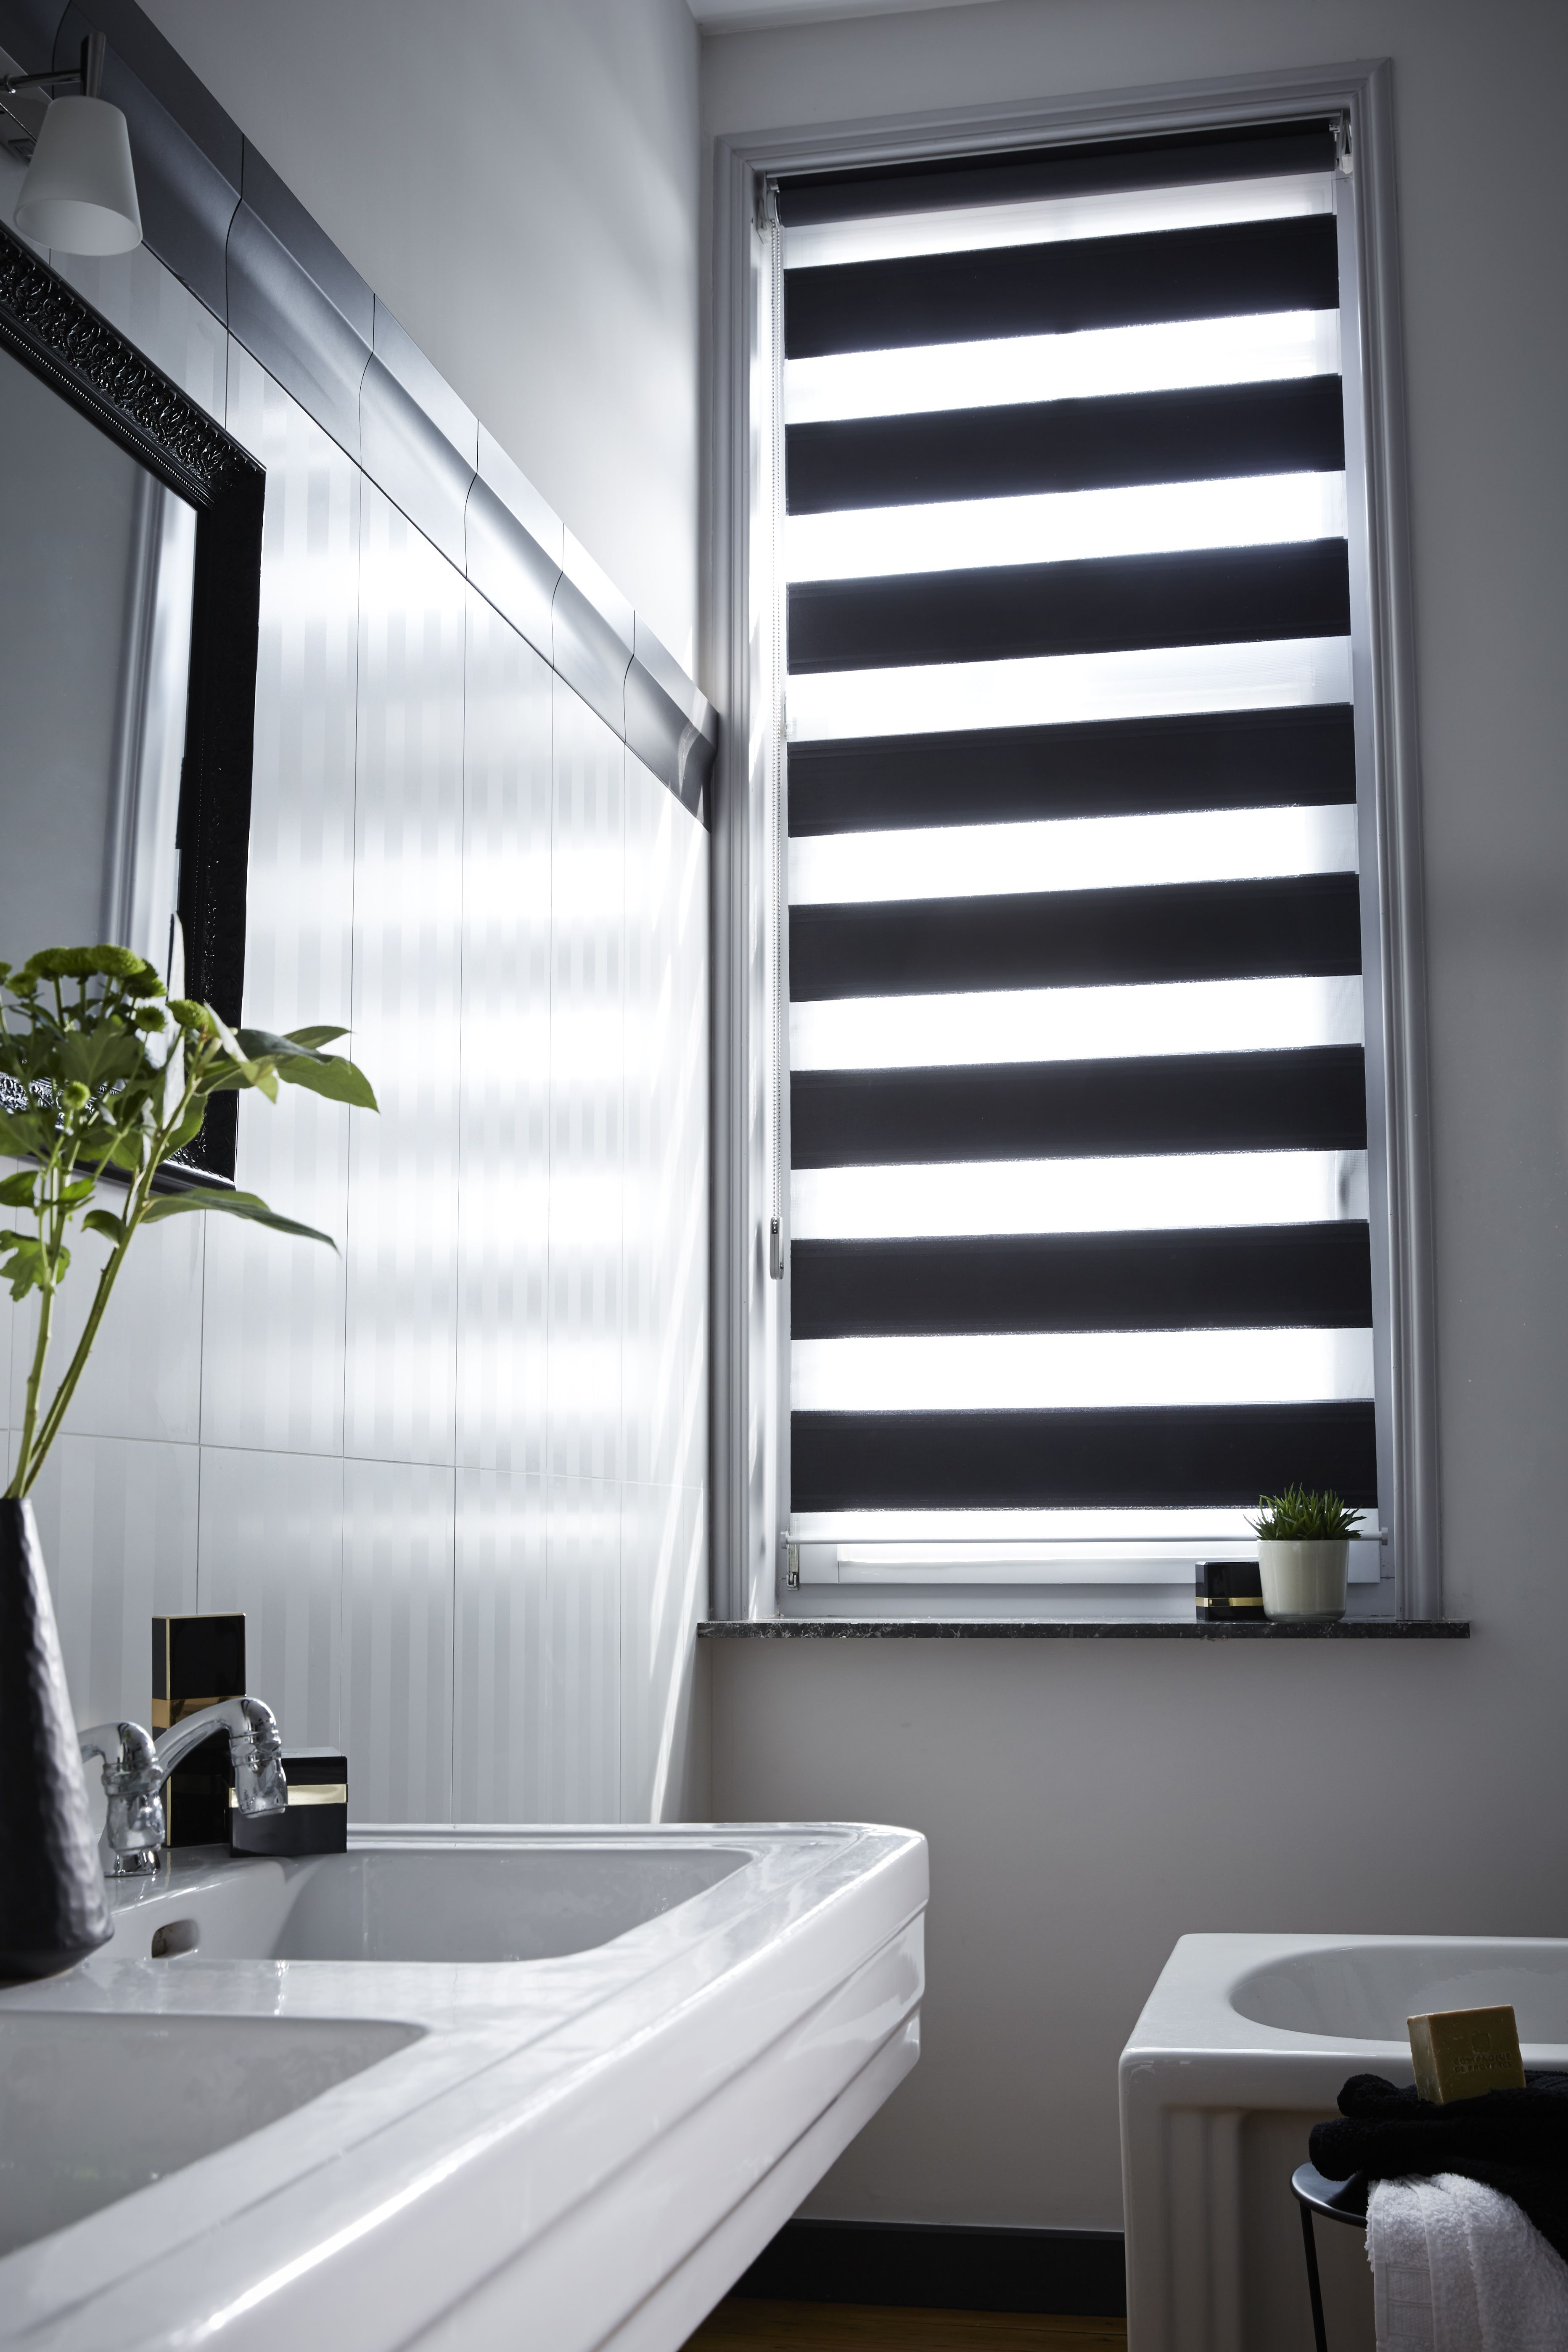 Window coverings for bathrooms - Chez Vous Window Blindsbathroom Window Coveringsbathroom